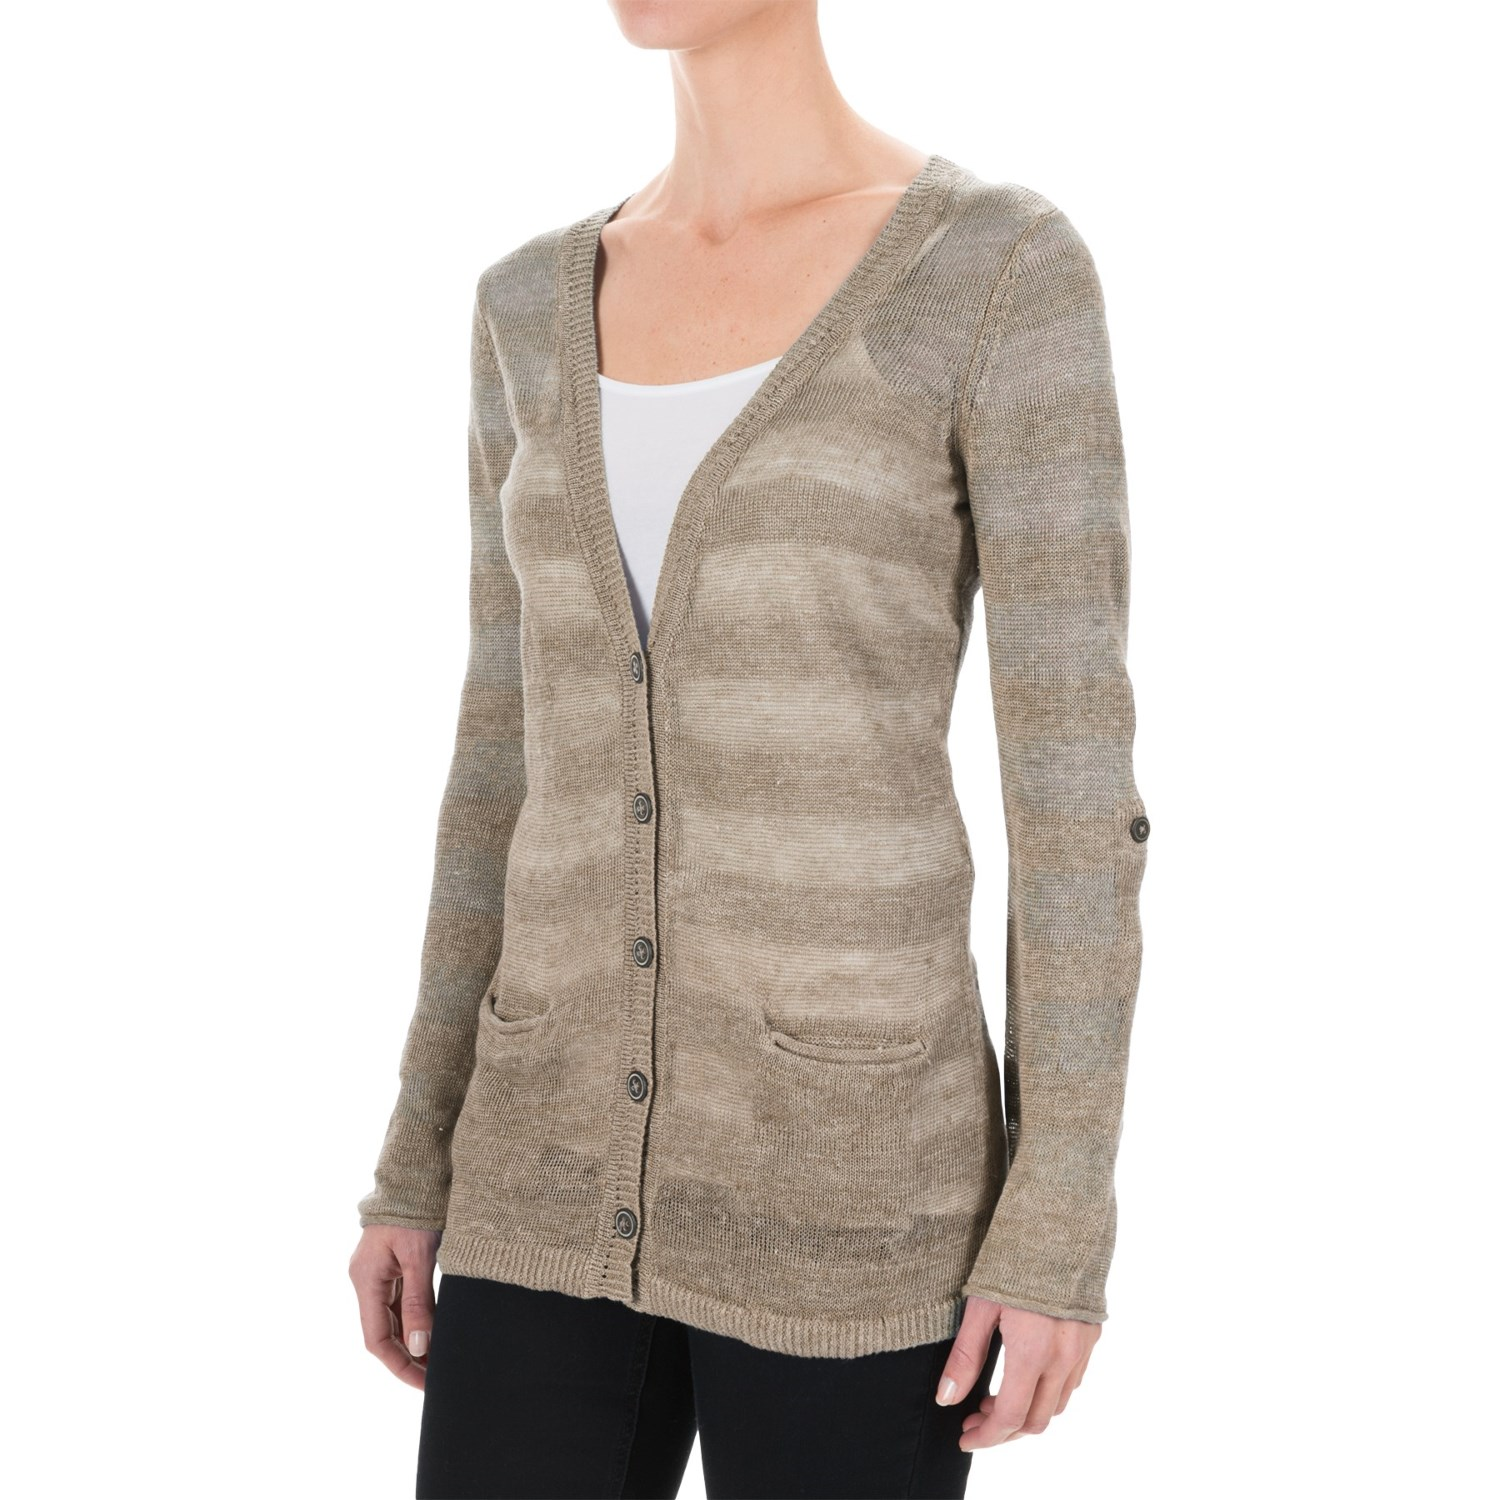 Royal Robbins Tupelo Knit Cardigan Sweater (For Women) - Save 71%